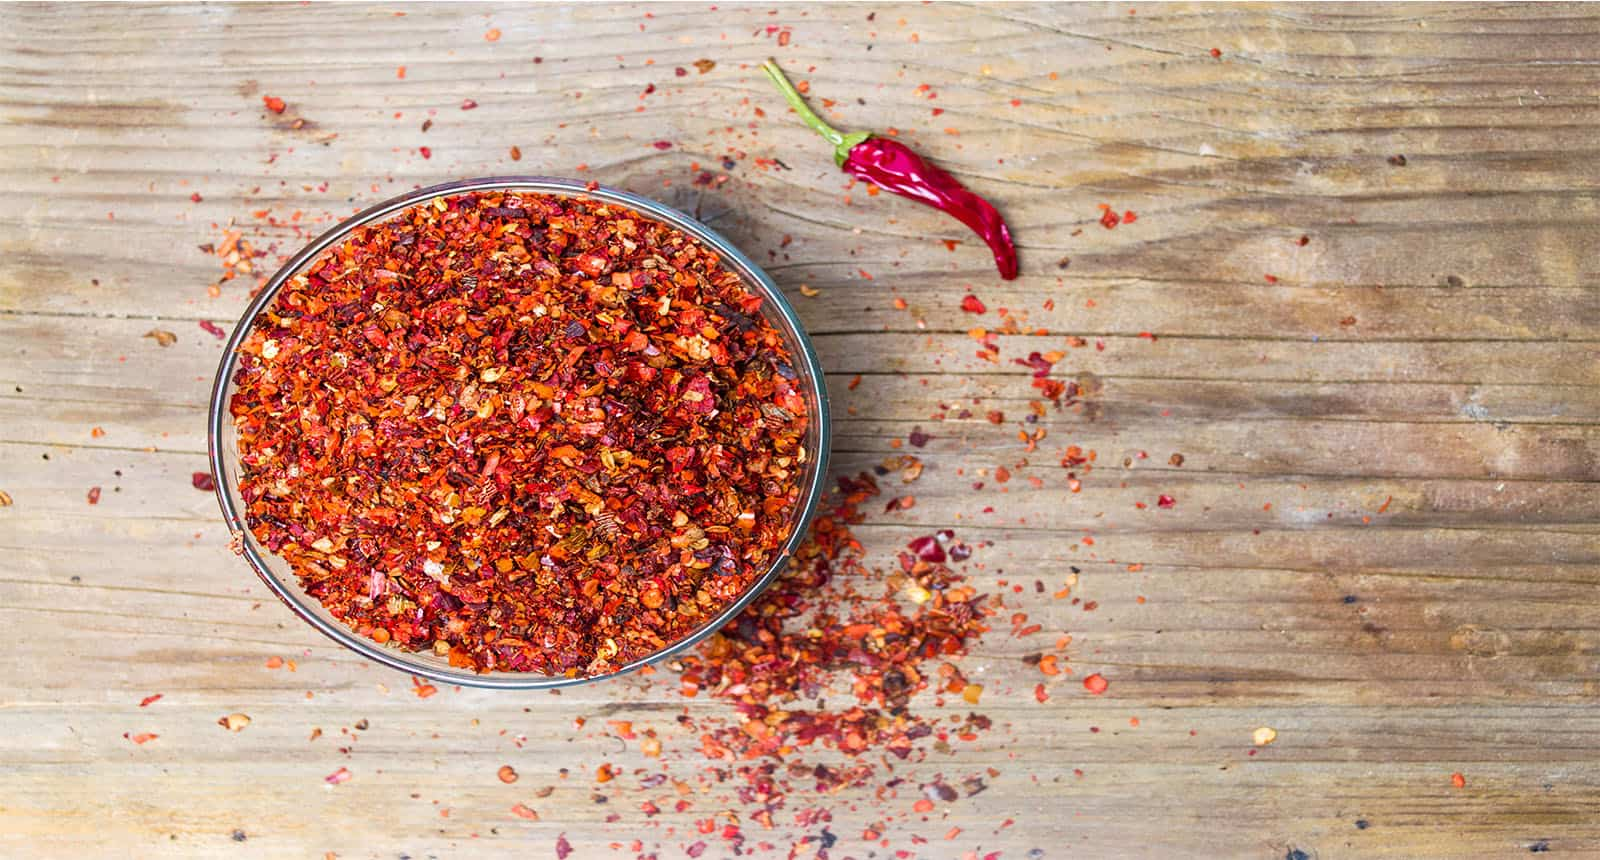 Whole Red Pepper Rustic